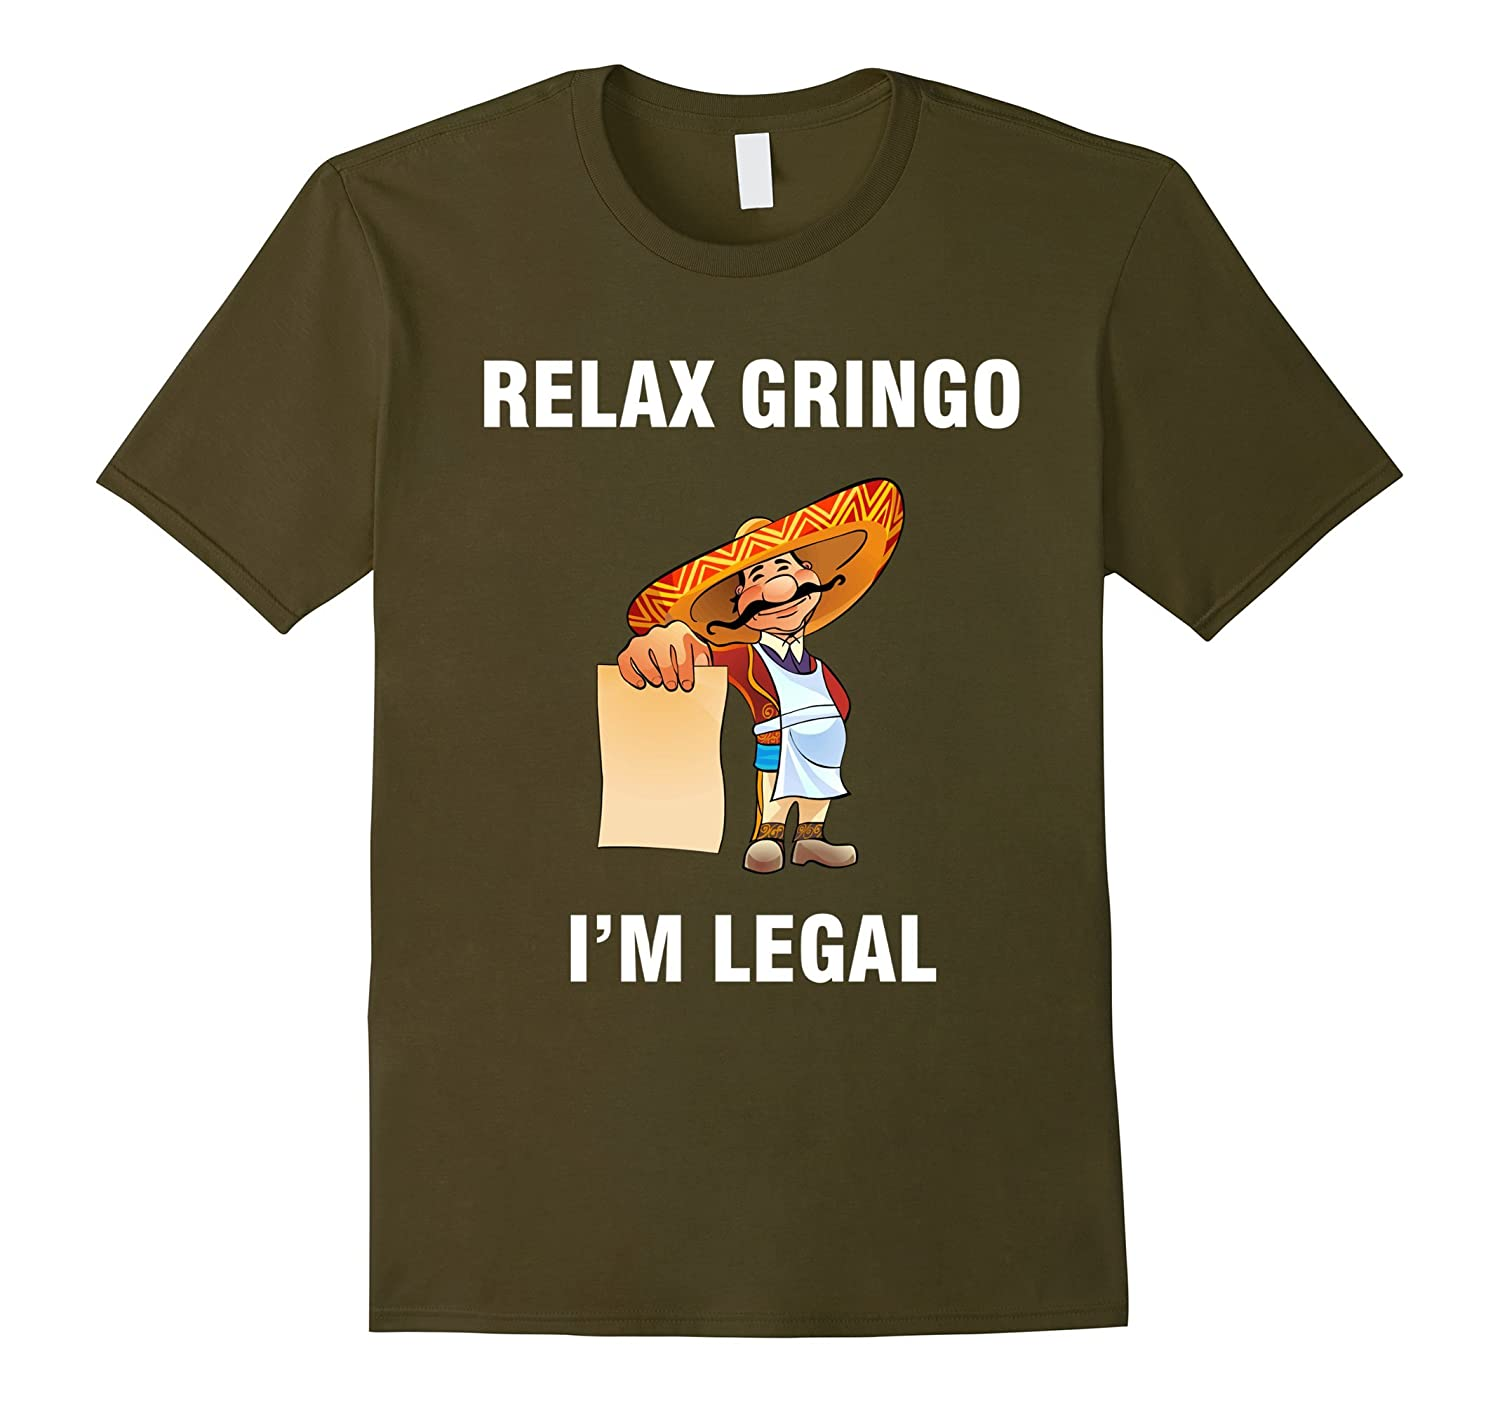 Relax Gringo I'm Legal Mexican, Latino, Spanish T-Shirt